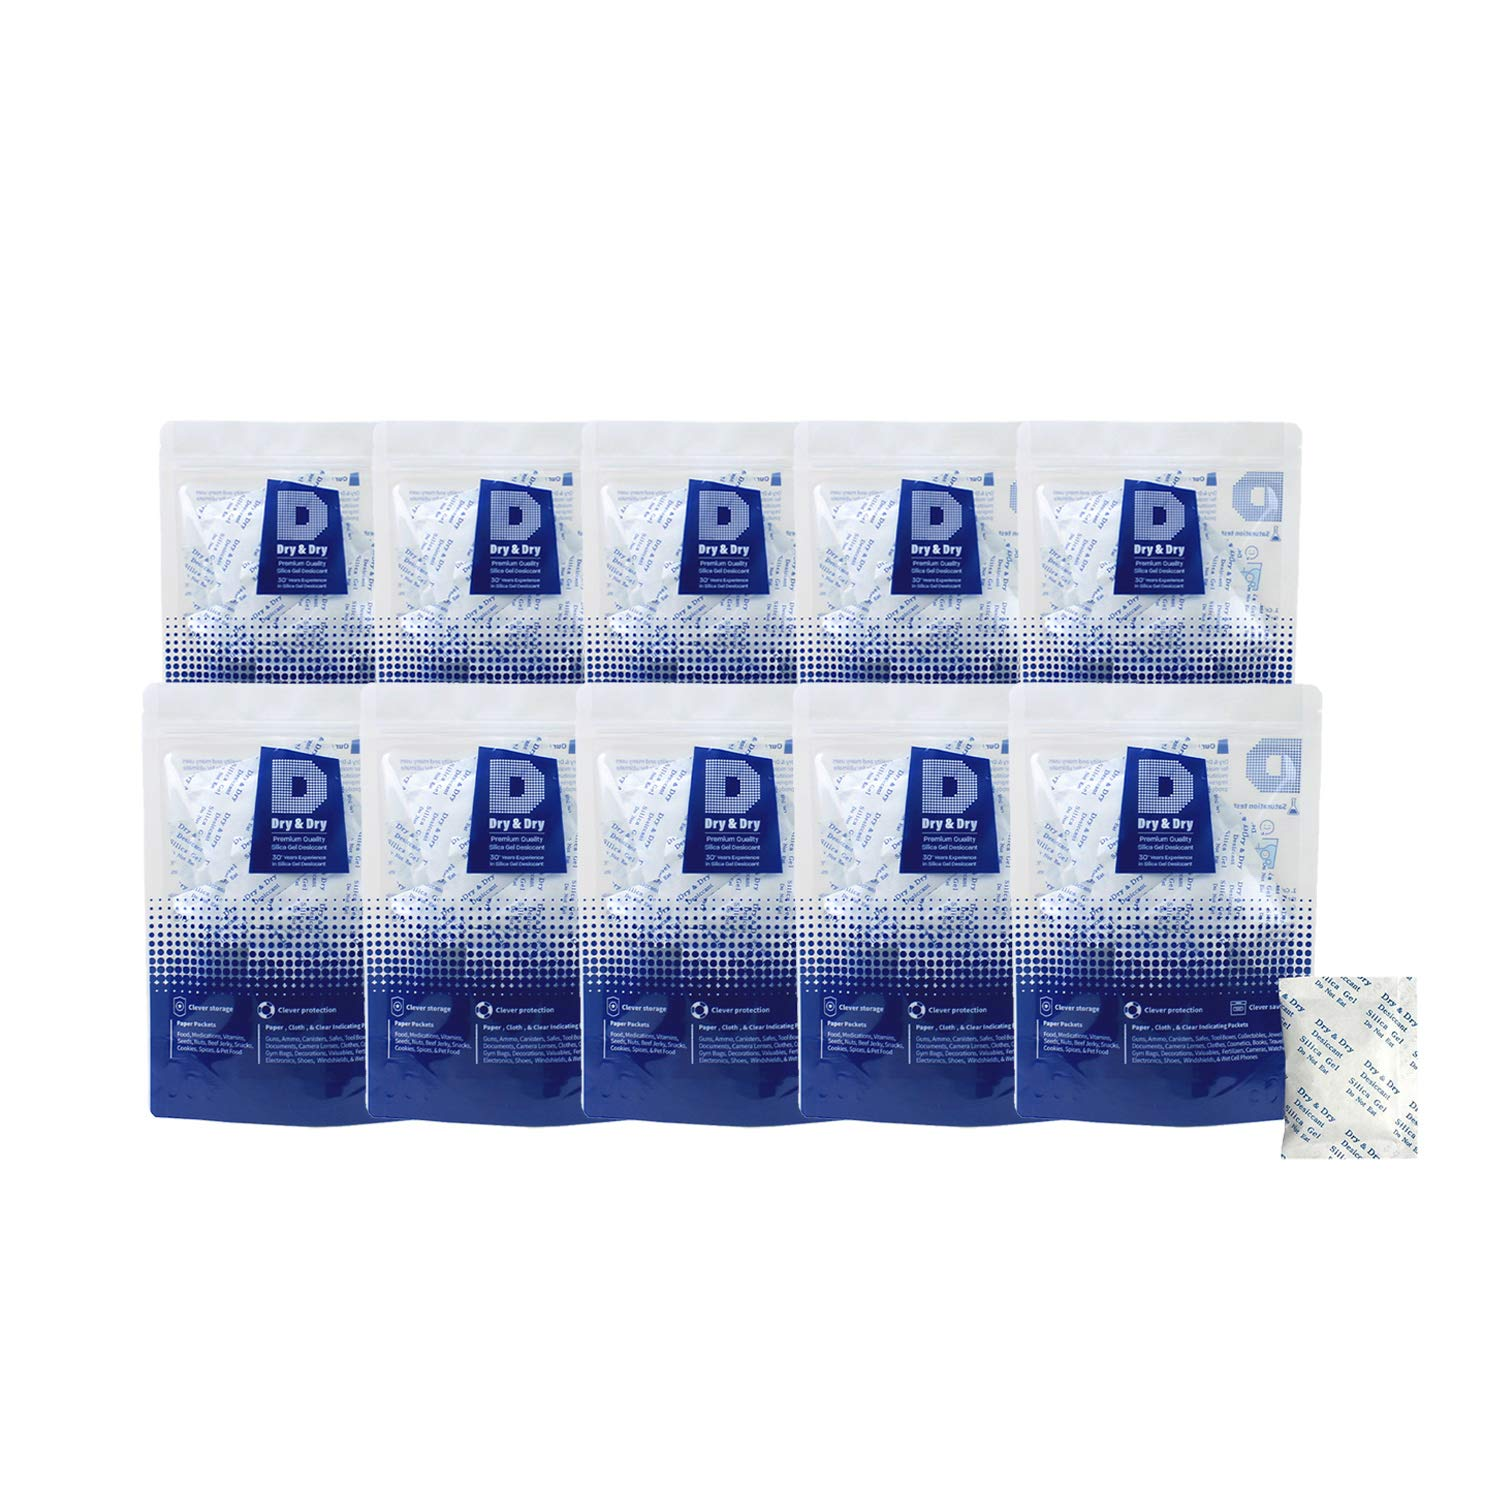 Dry & Dry 10 Gram [500 Packets] Premium Pure & Safe Silica Gel Packets Desiccant Dehumidifier - Food Safe Rechargeable(FDA Compliant) Silica Packets for Moisture by Dry & Dry